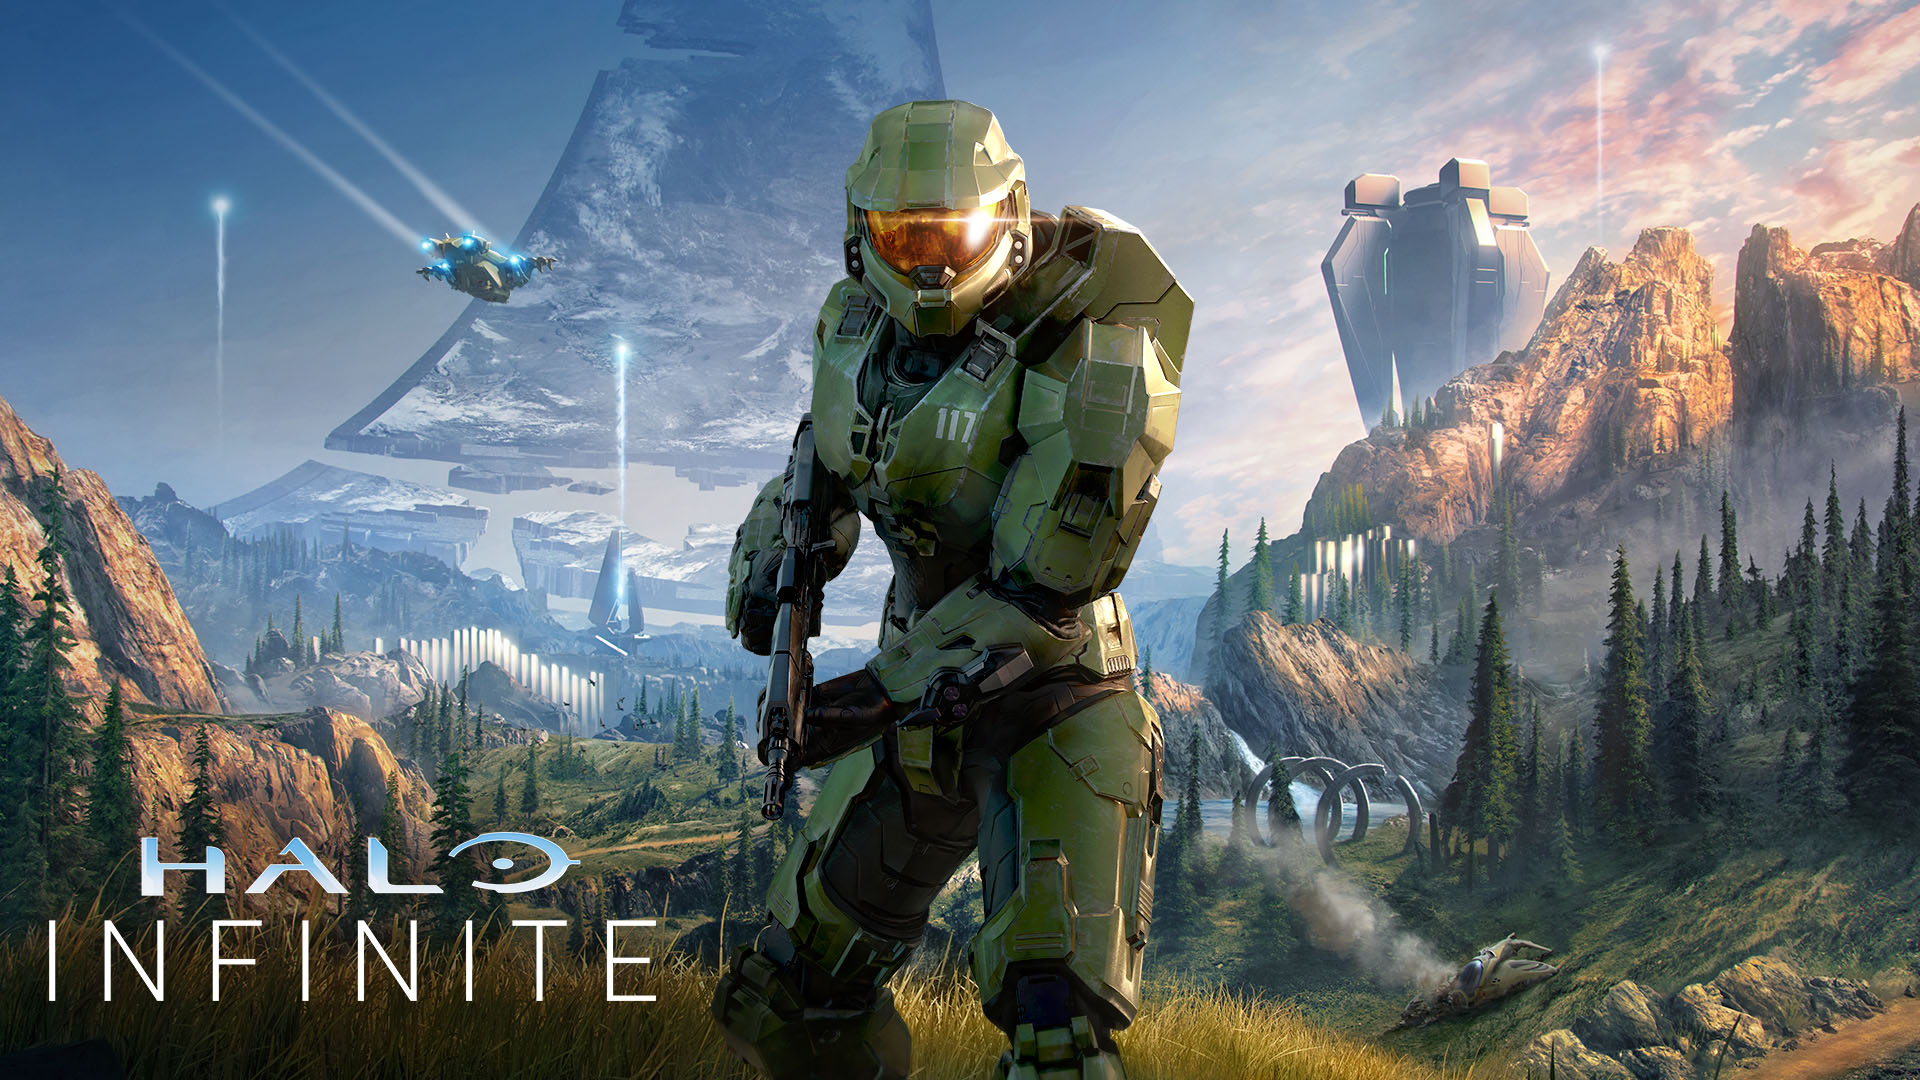 Halo Infinite is Content Complete